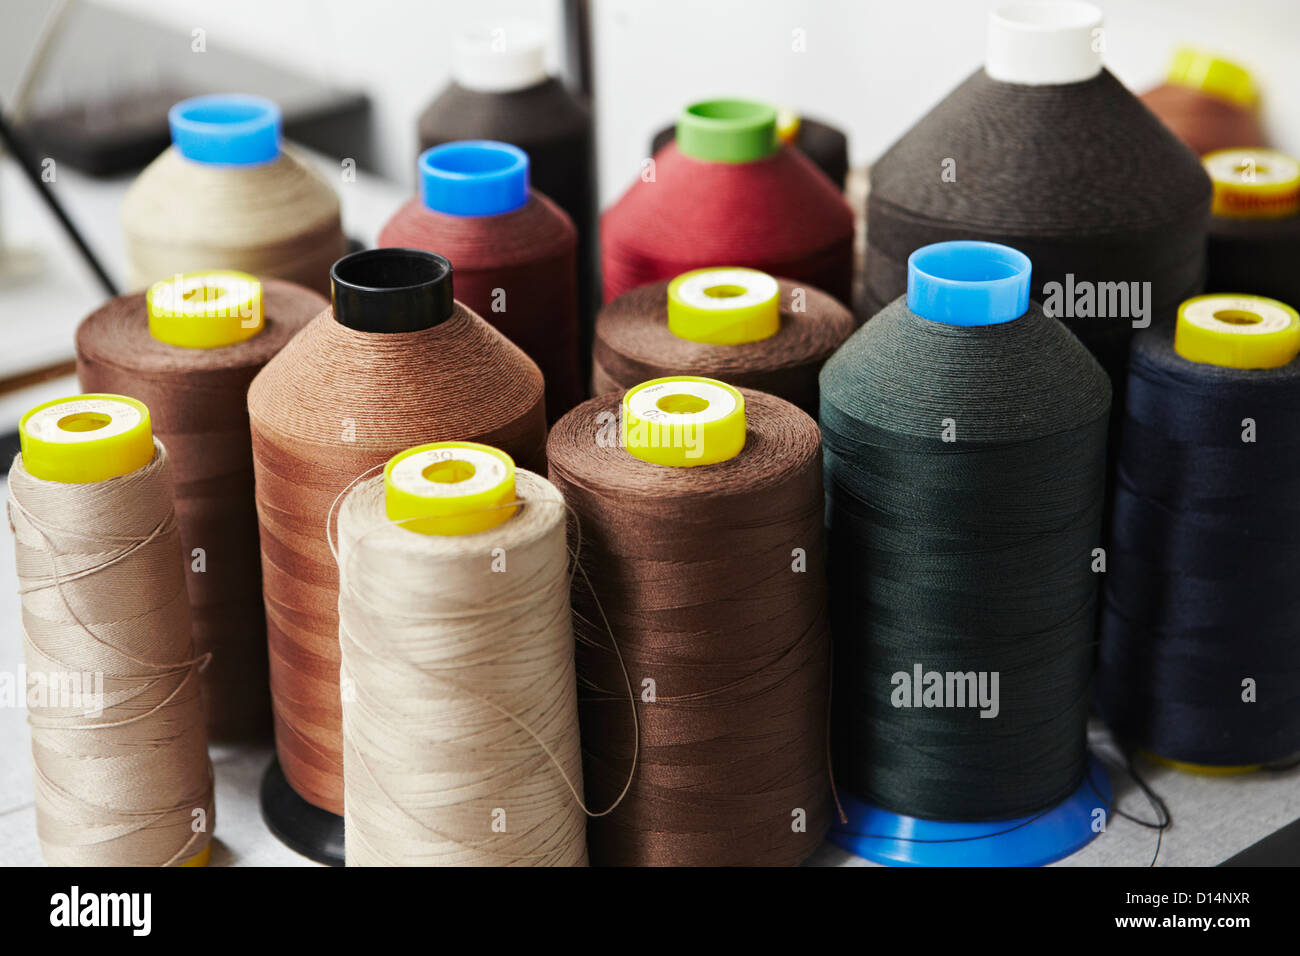 Spools of colored thread - Stock Image